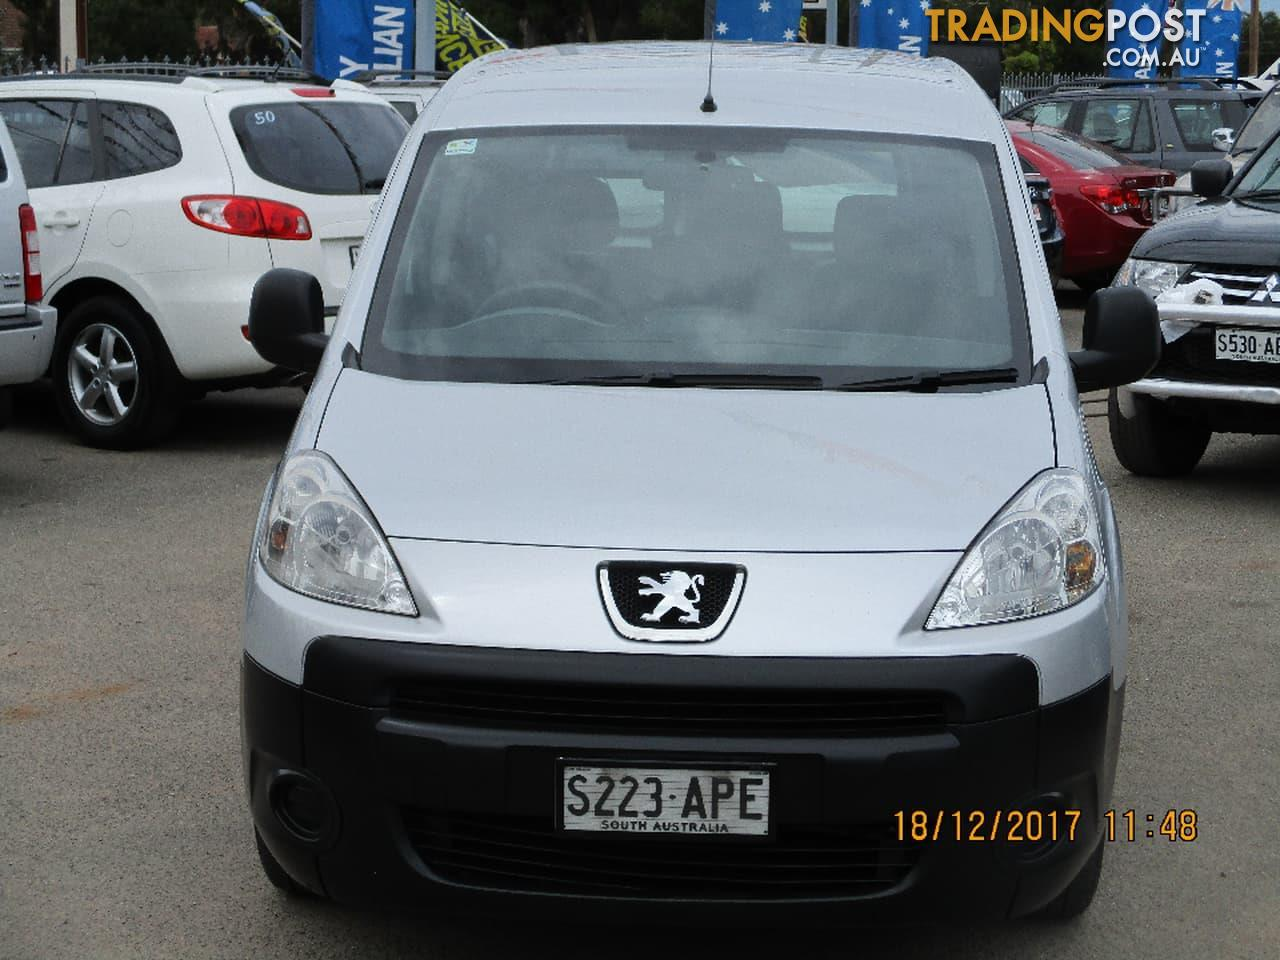 2011 Peugeot Partner L2 B9p Van For Sale In 2011 Peugeot Partner  # Muebles Camper Peugeot Partner